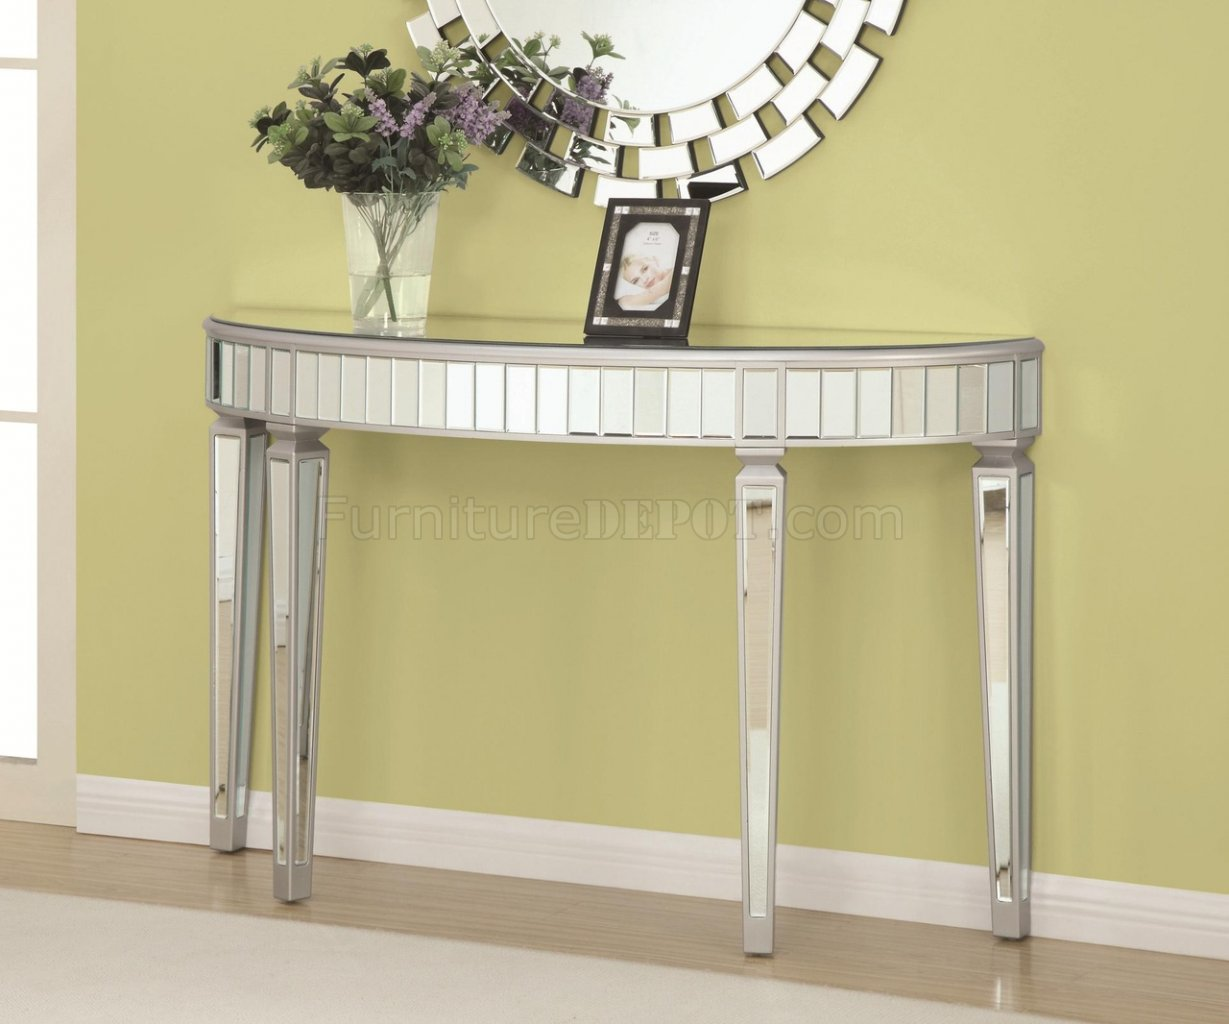 950183 Console Table In Silver Tone By Coaster